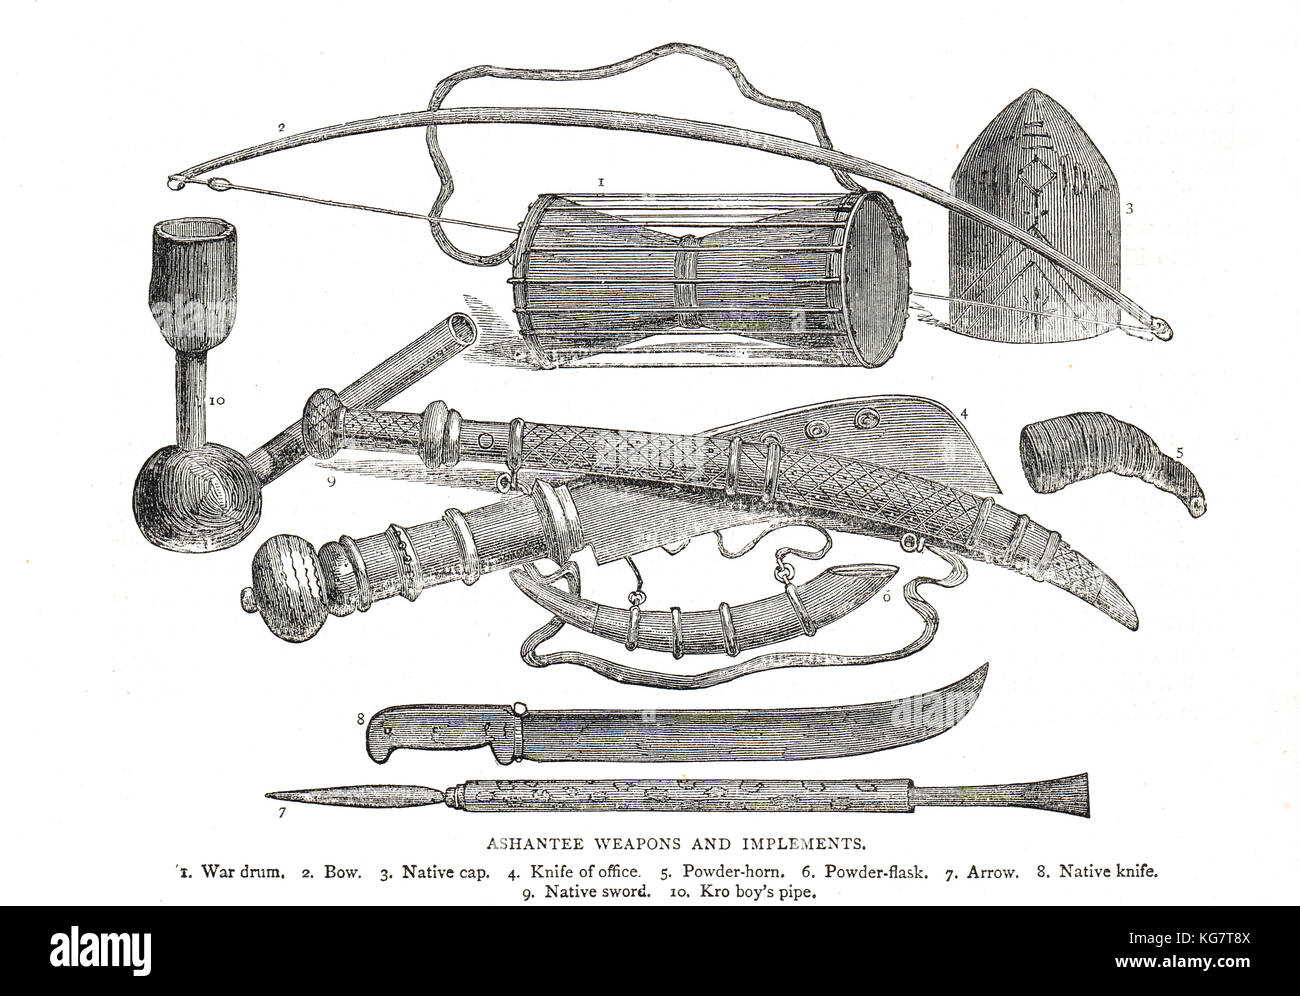 19th century Ashanti weapons and implements - Stock Image